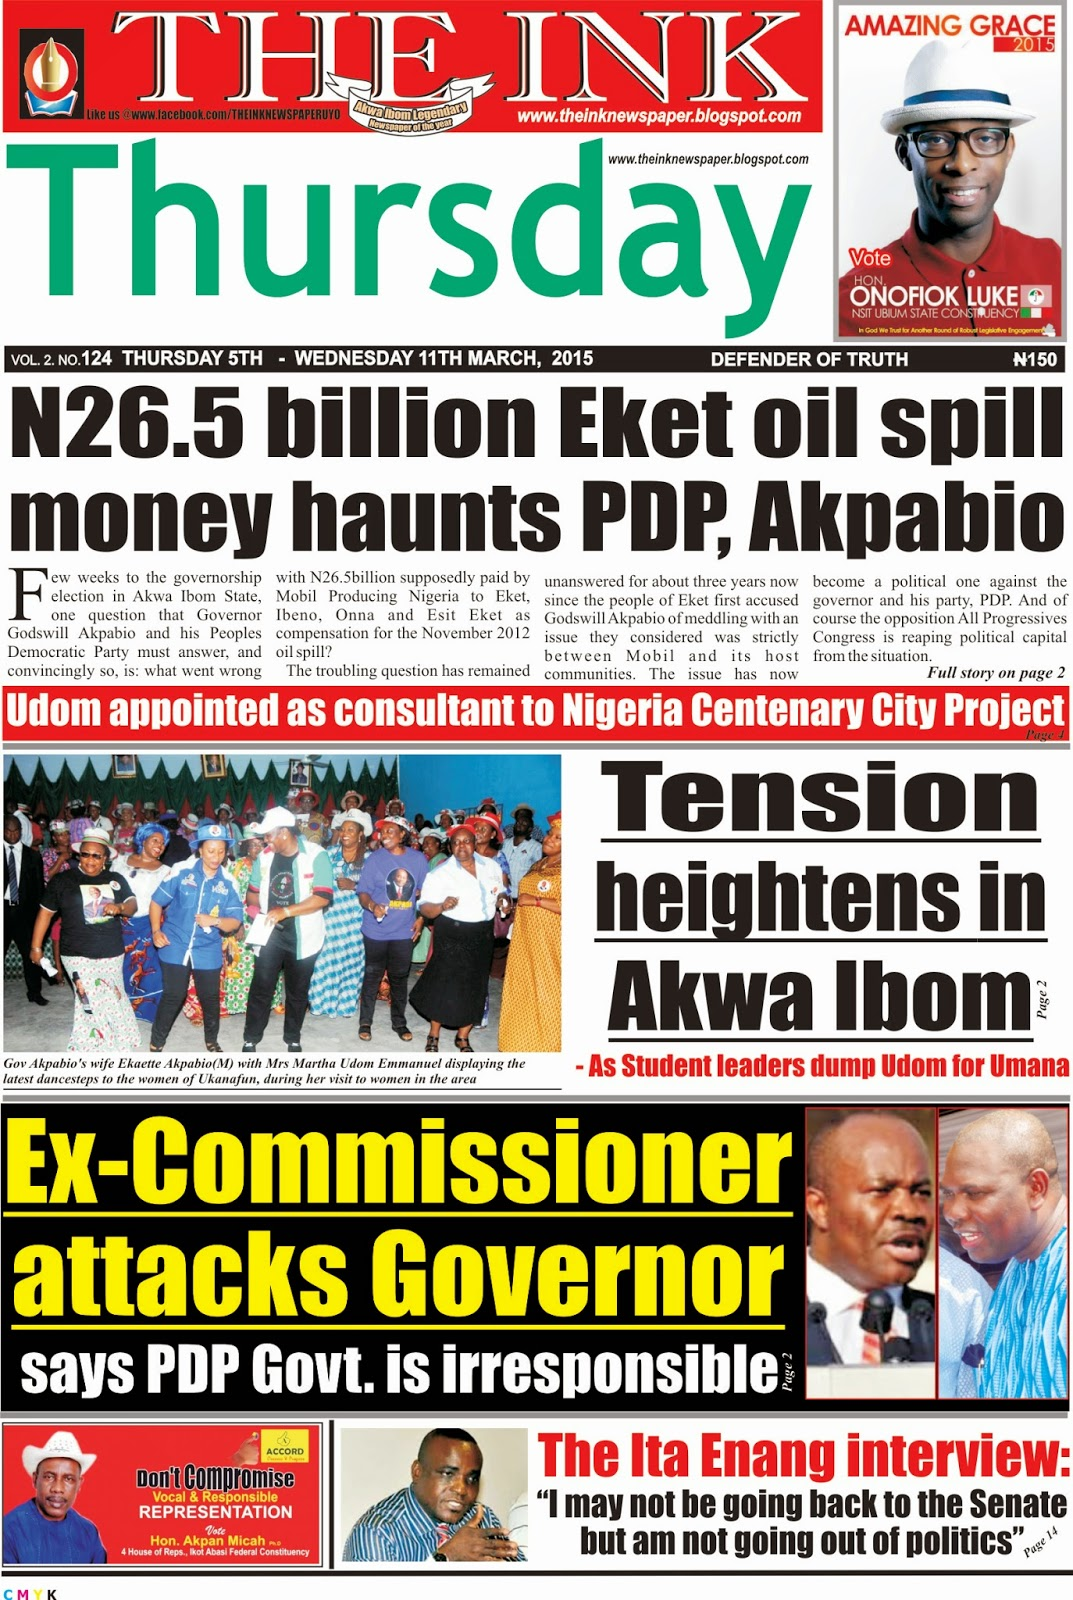 Latest Edition of THE INK NEWSPAPER, UYO